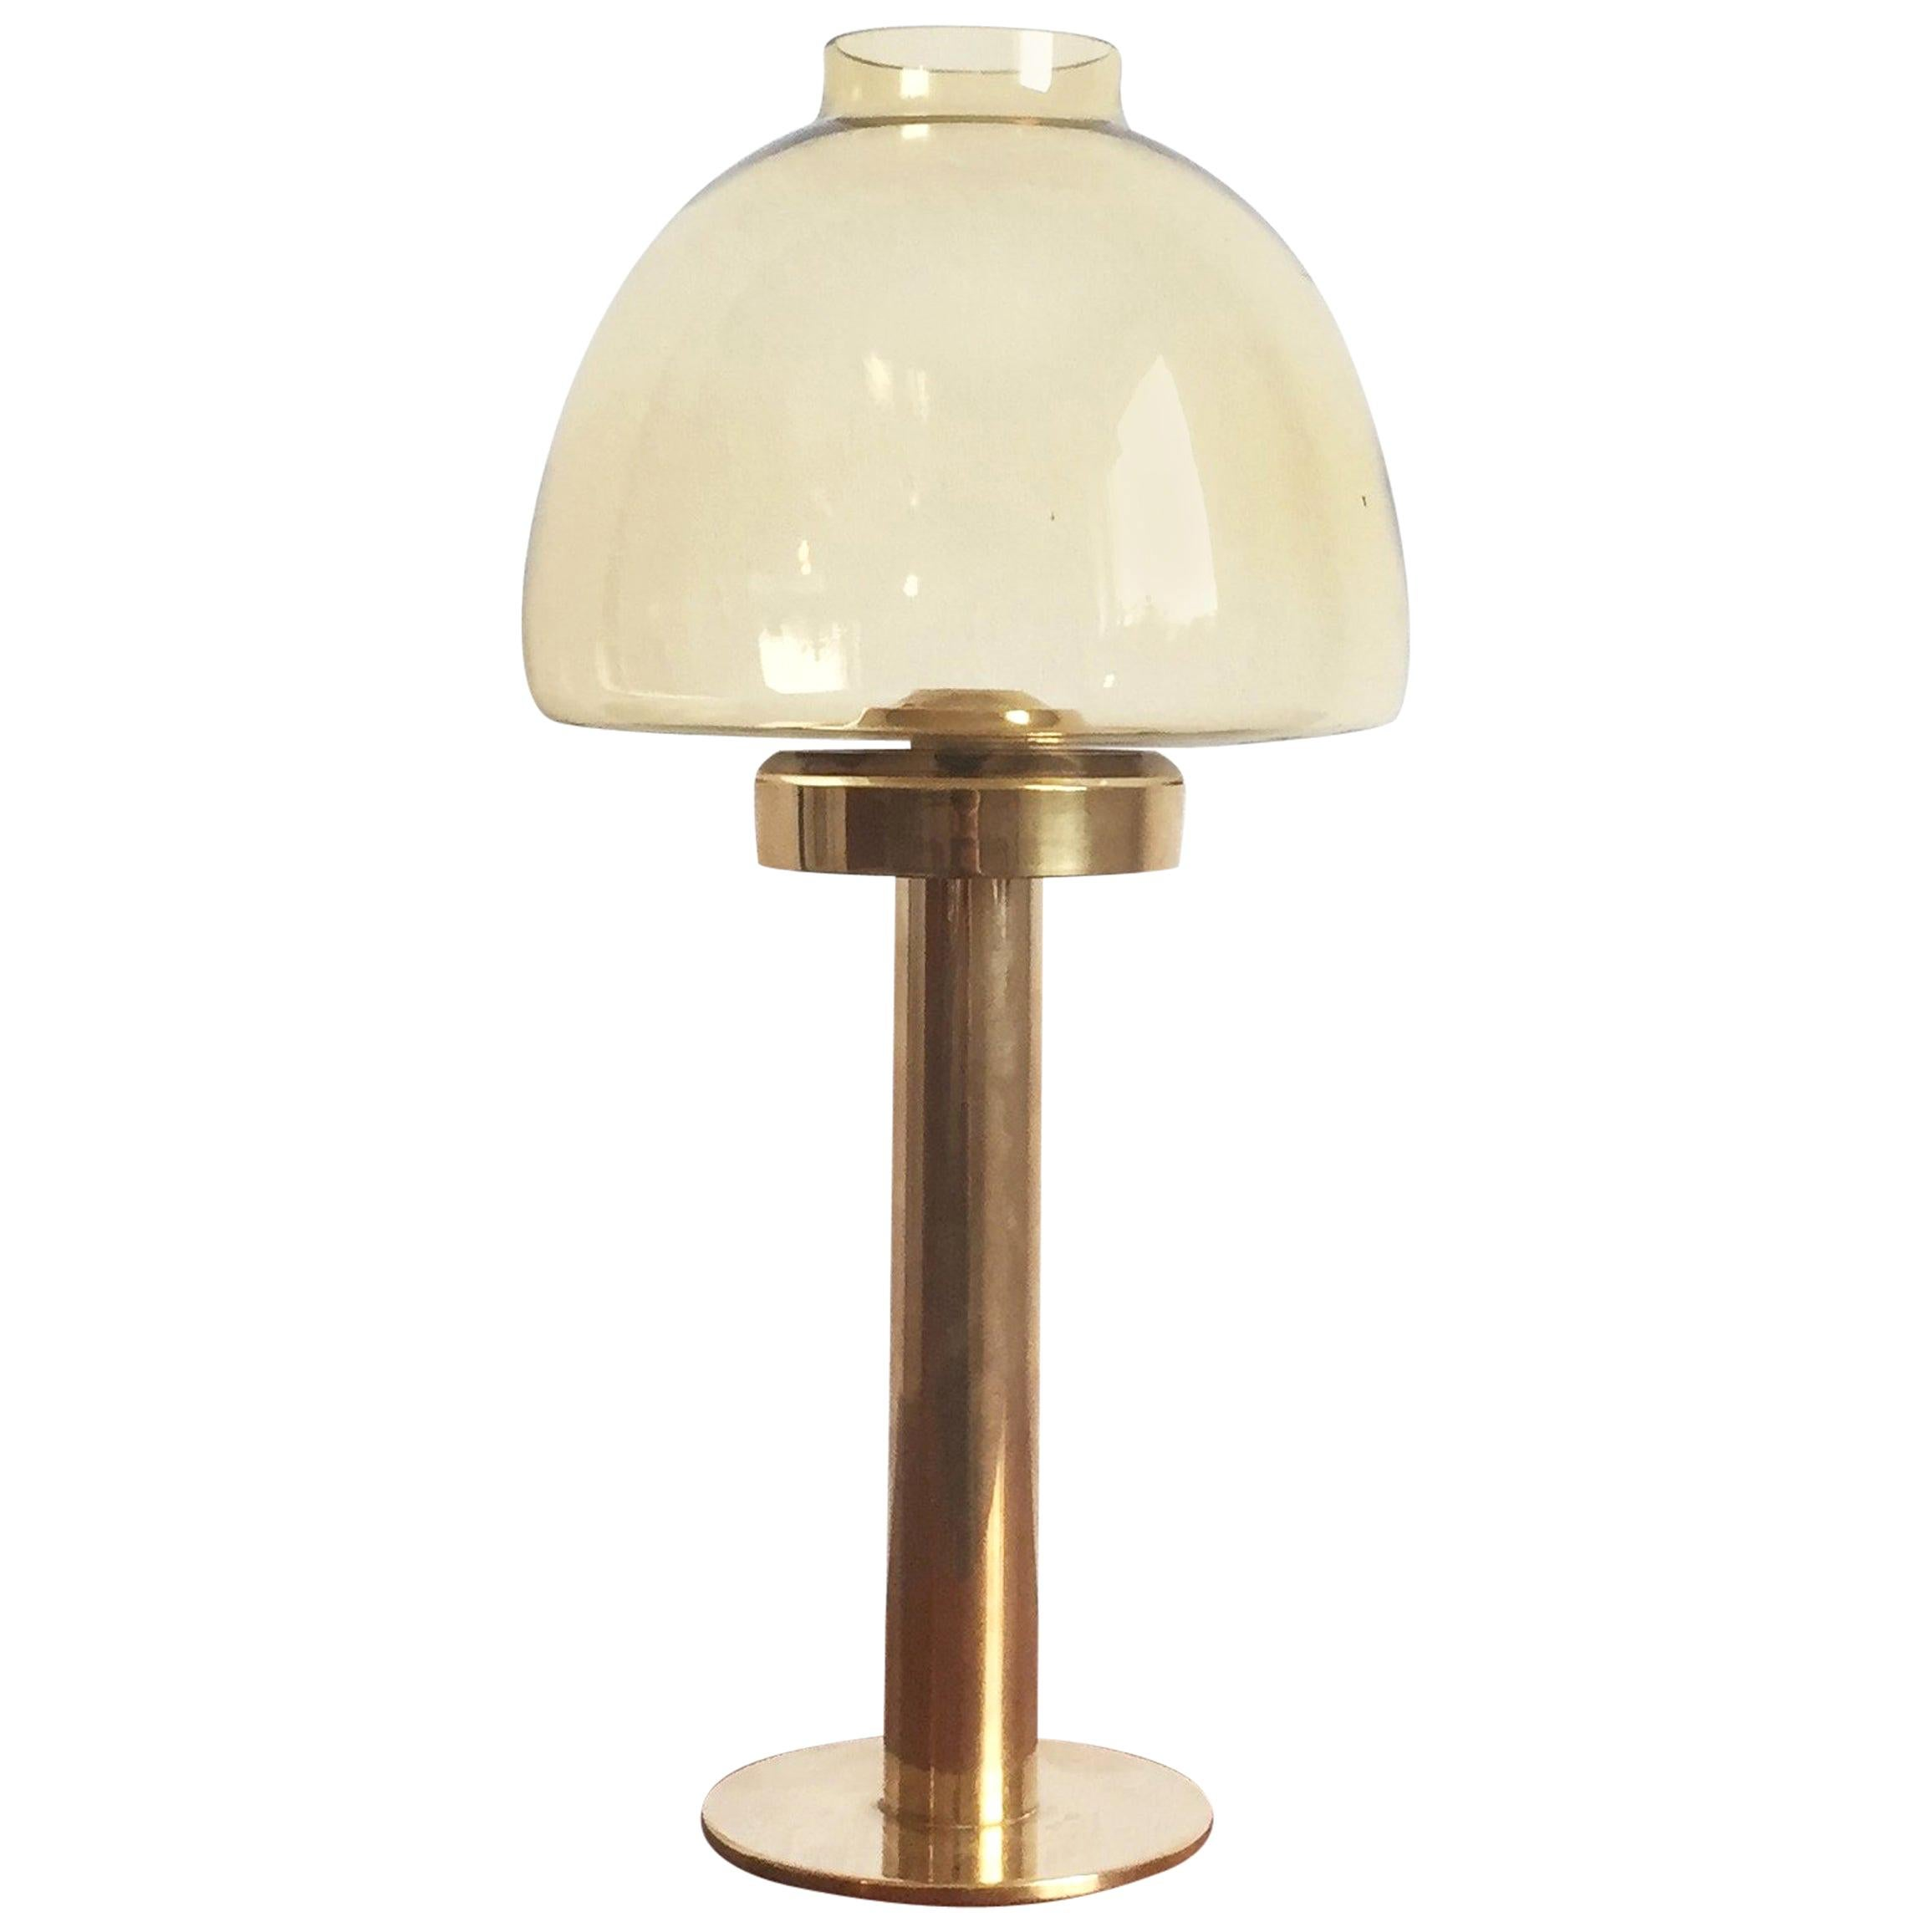 1960s Brass and Glass 'Claudia' Candleholder Made by Hans-Agne Jakobsson